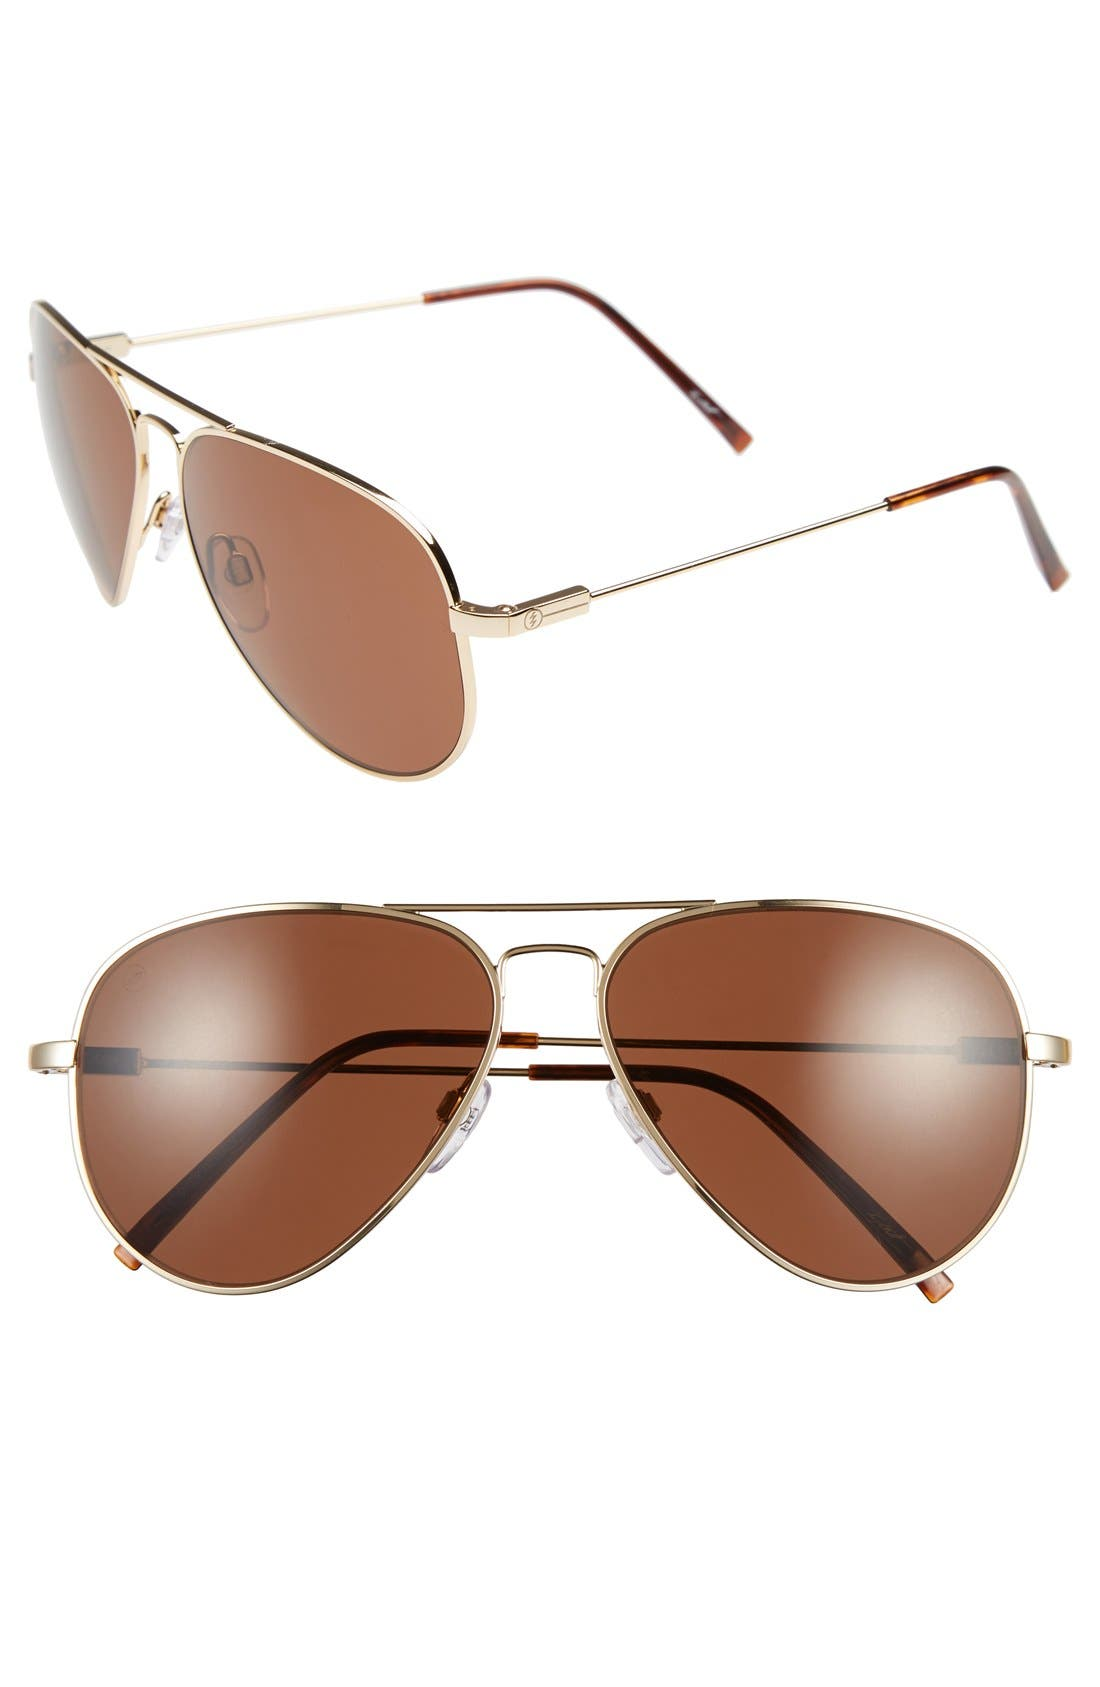 ELECTRIC 'AV1' 58mm Aviator Sunglasses